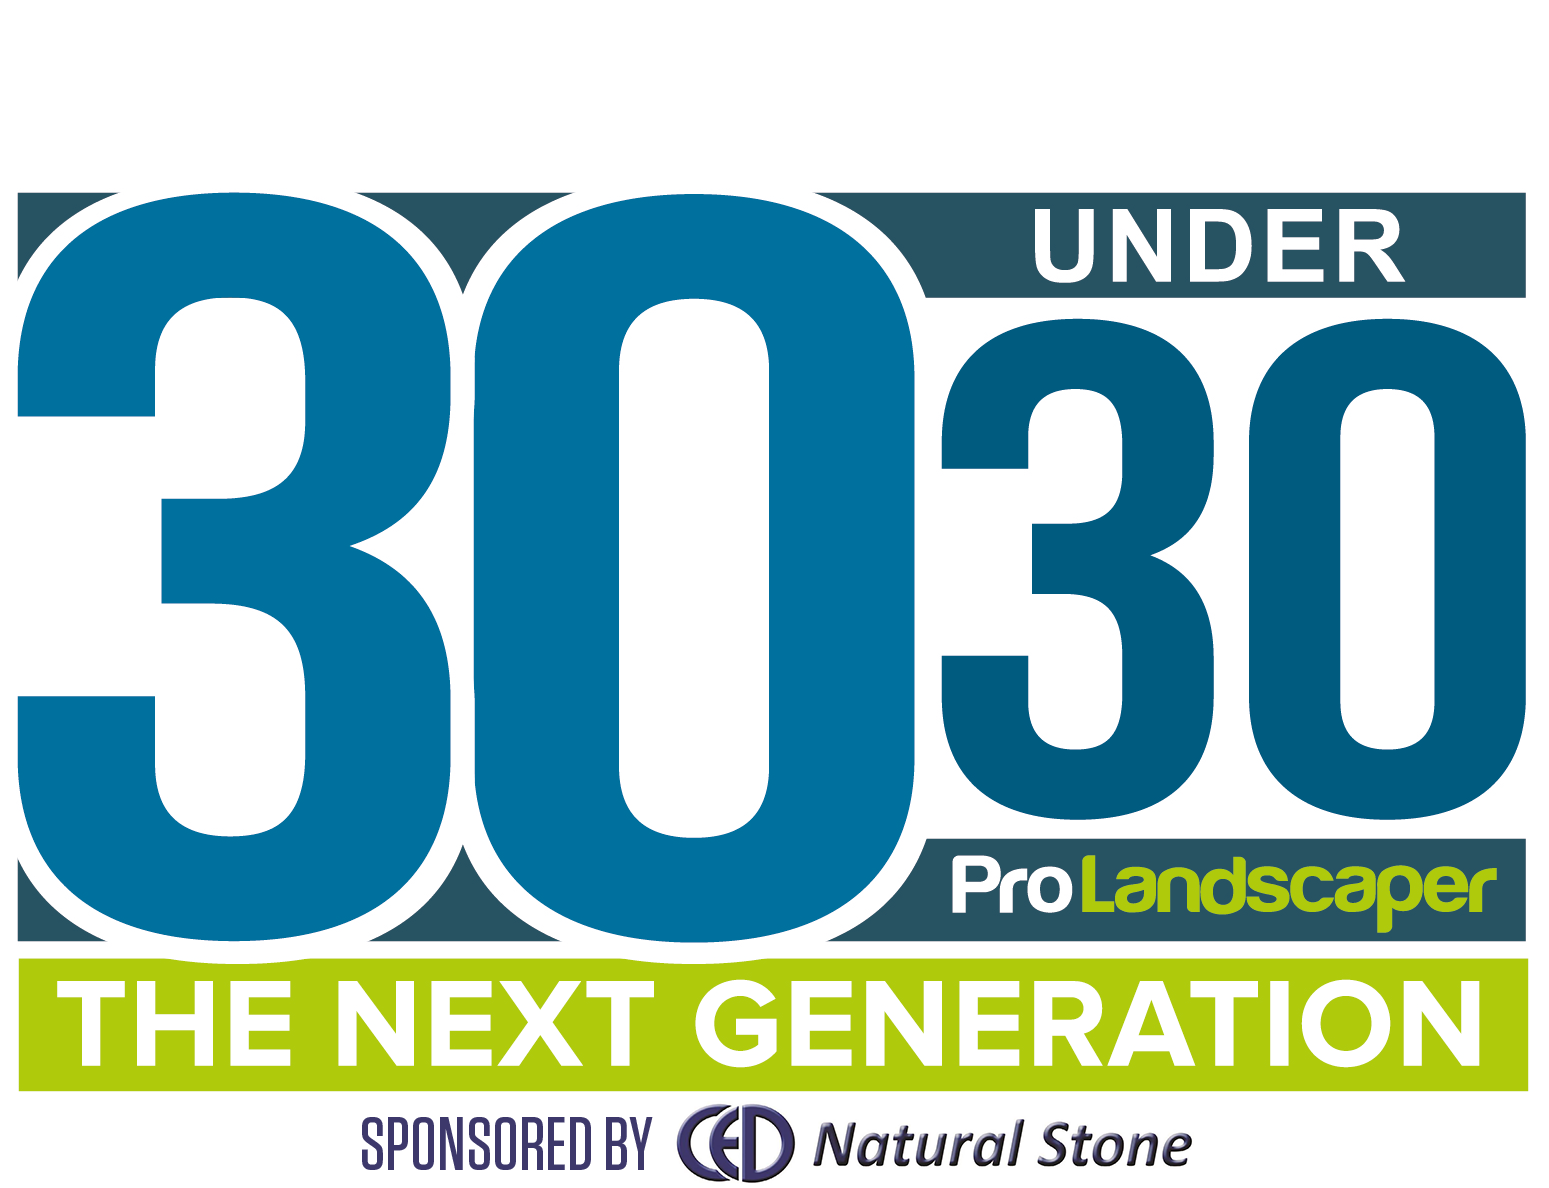 CED Stone Group: Sponsoring 'The Next Generation'